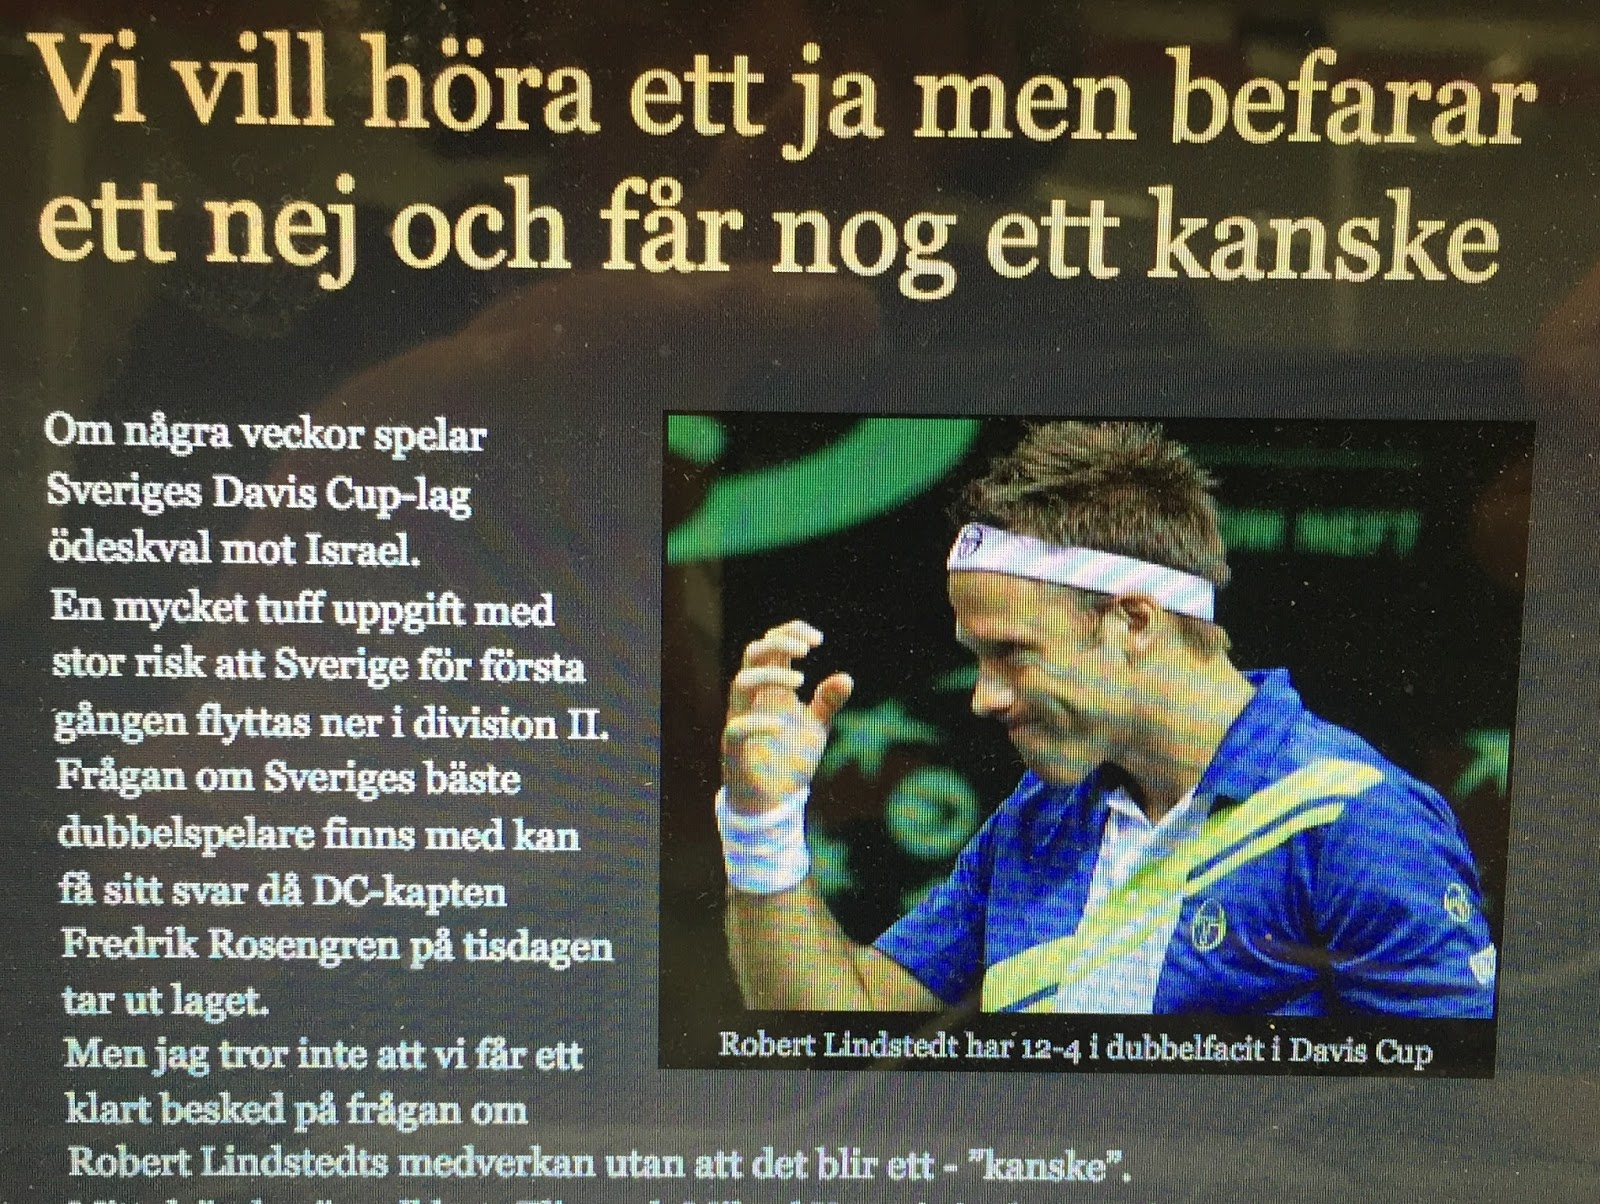 Robert lindstedt mot favoriter